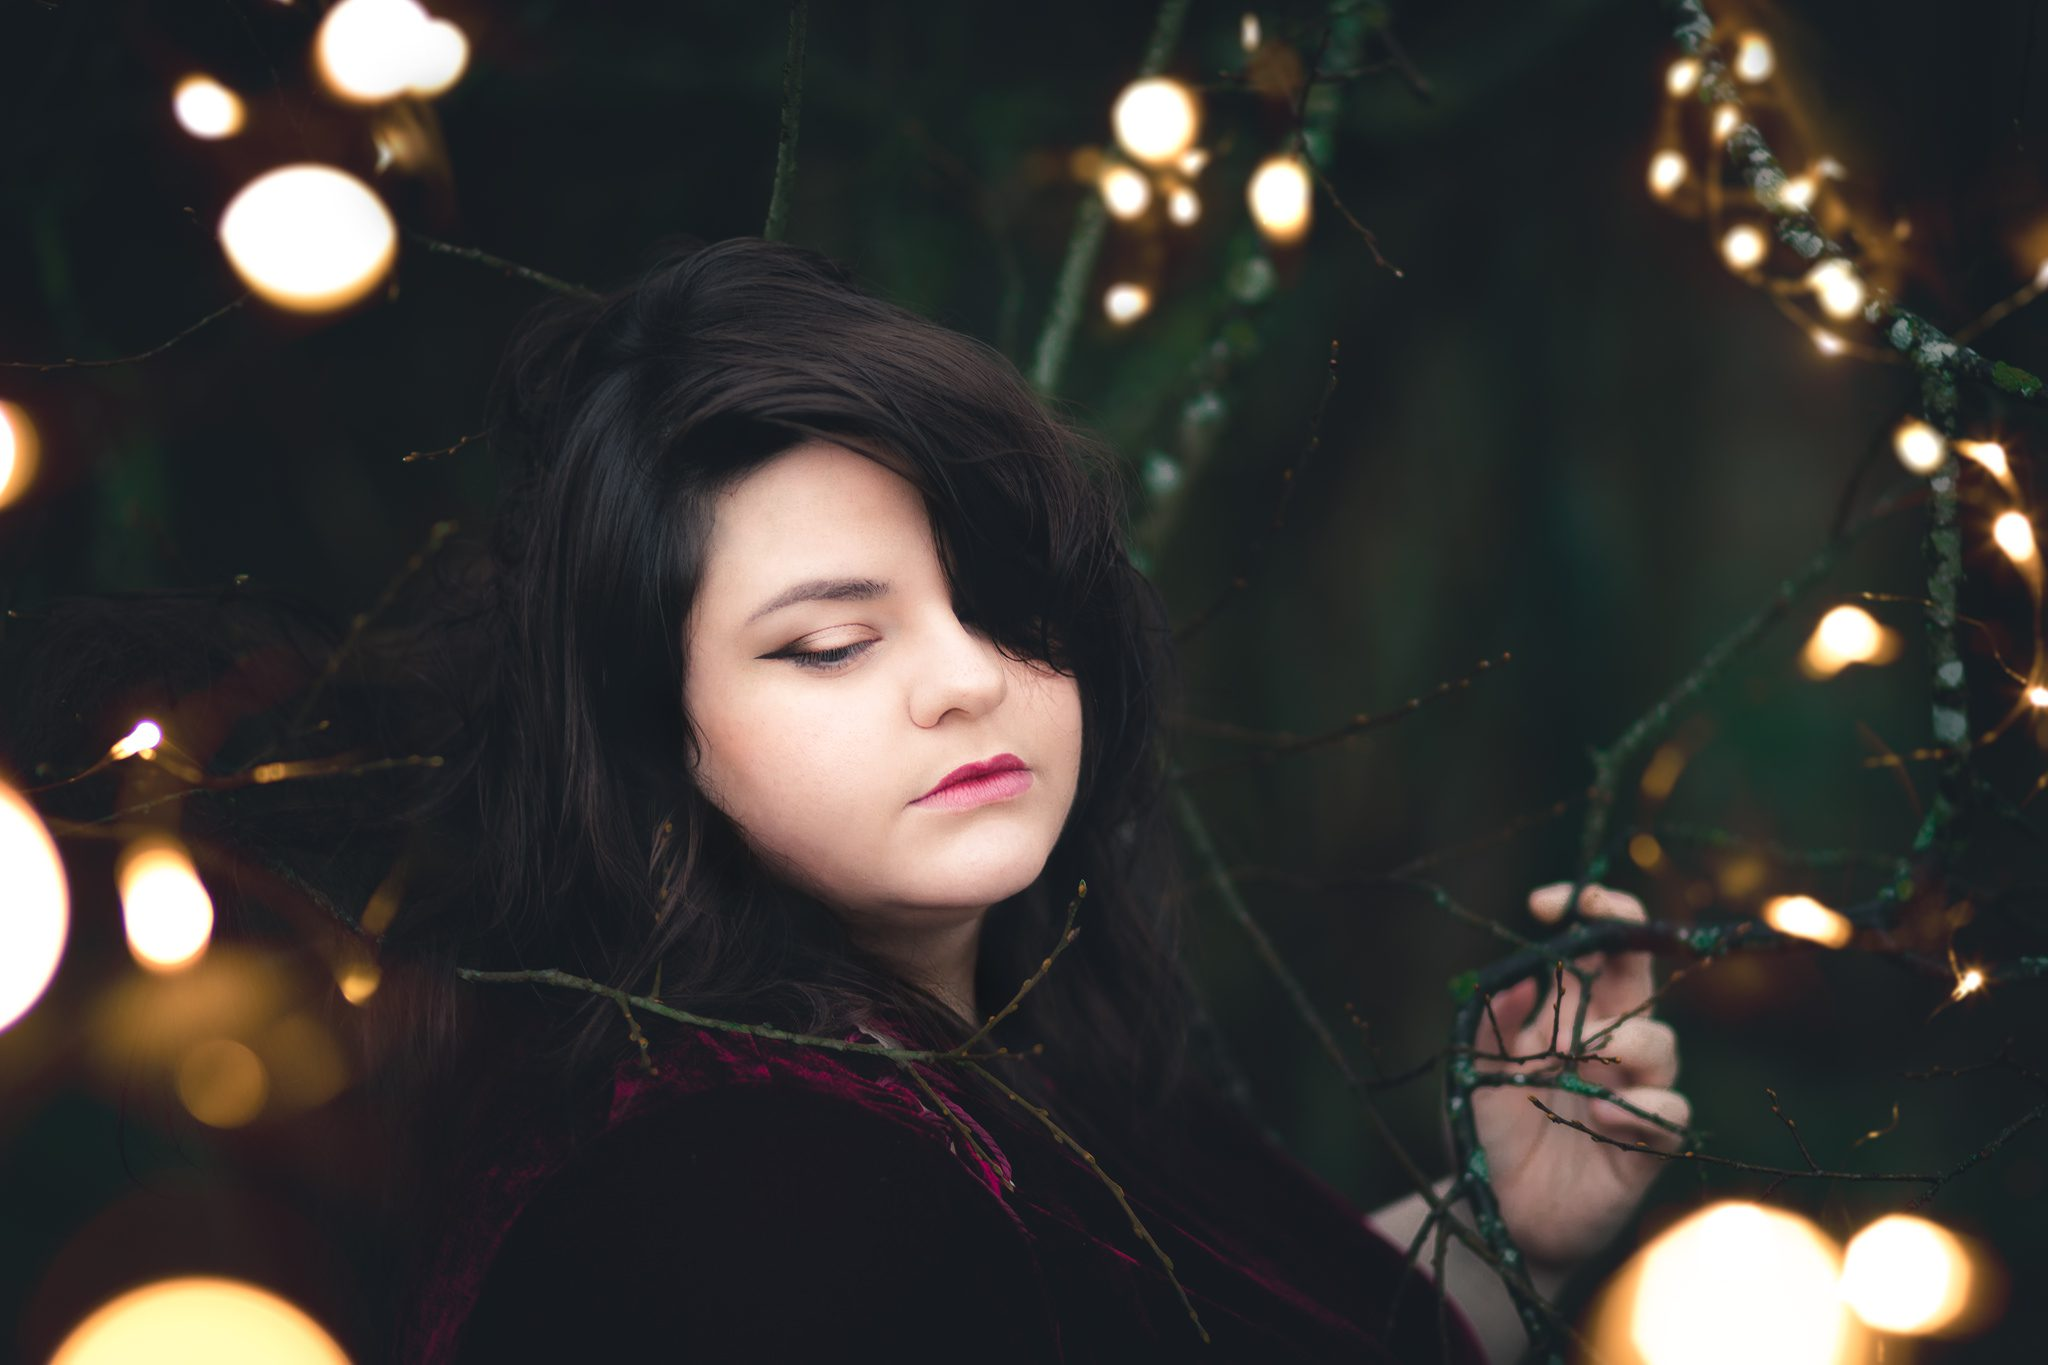 Buxton Portrait Photographer - Ellie Fairylights